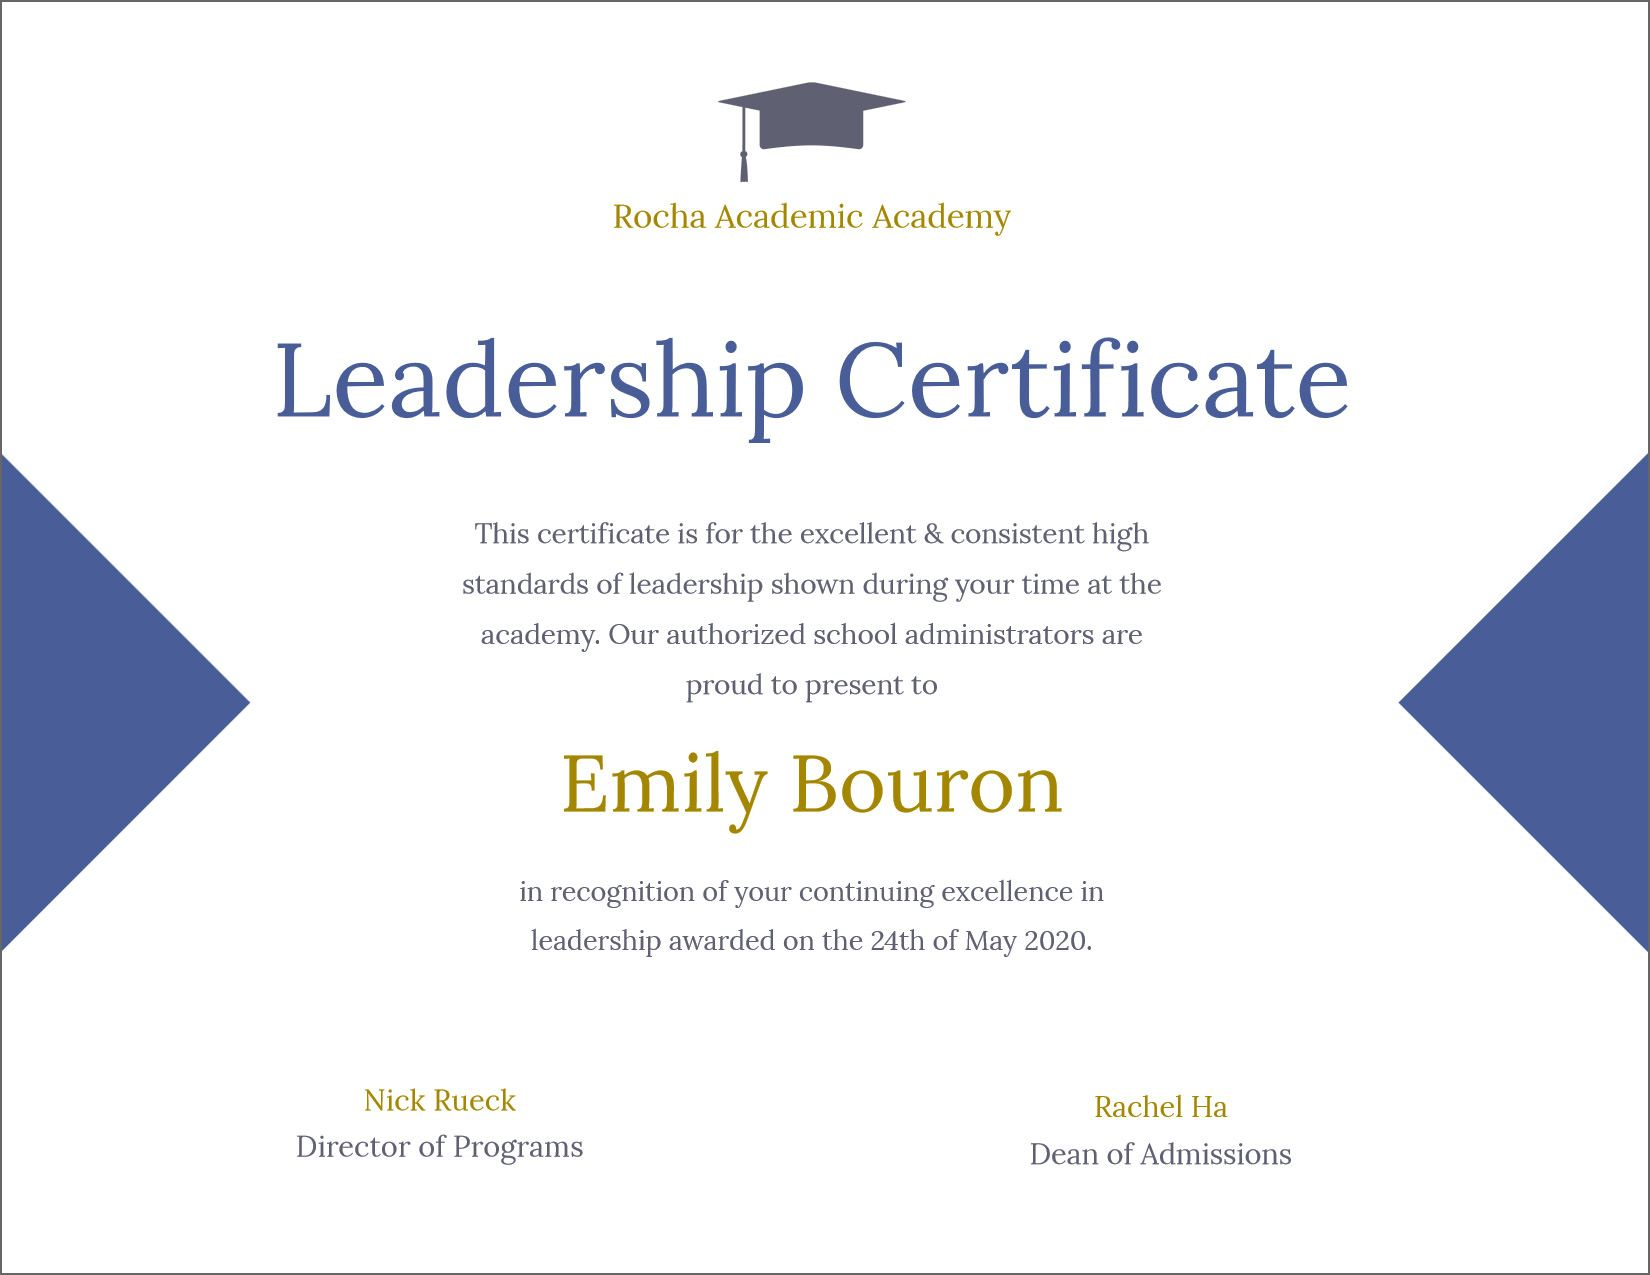 50 Free Creative Blank Certificate Templates In Psd Within Leadership Awar In 2020 Blank Certificate Template Awards Certificates Template Employee Awards Certificates